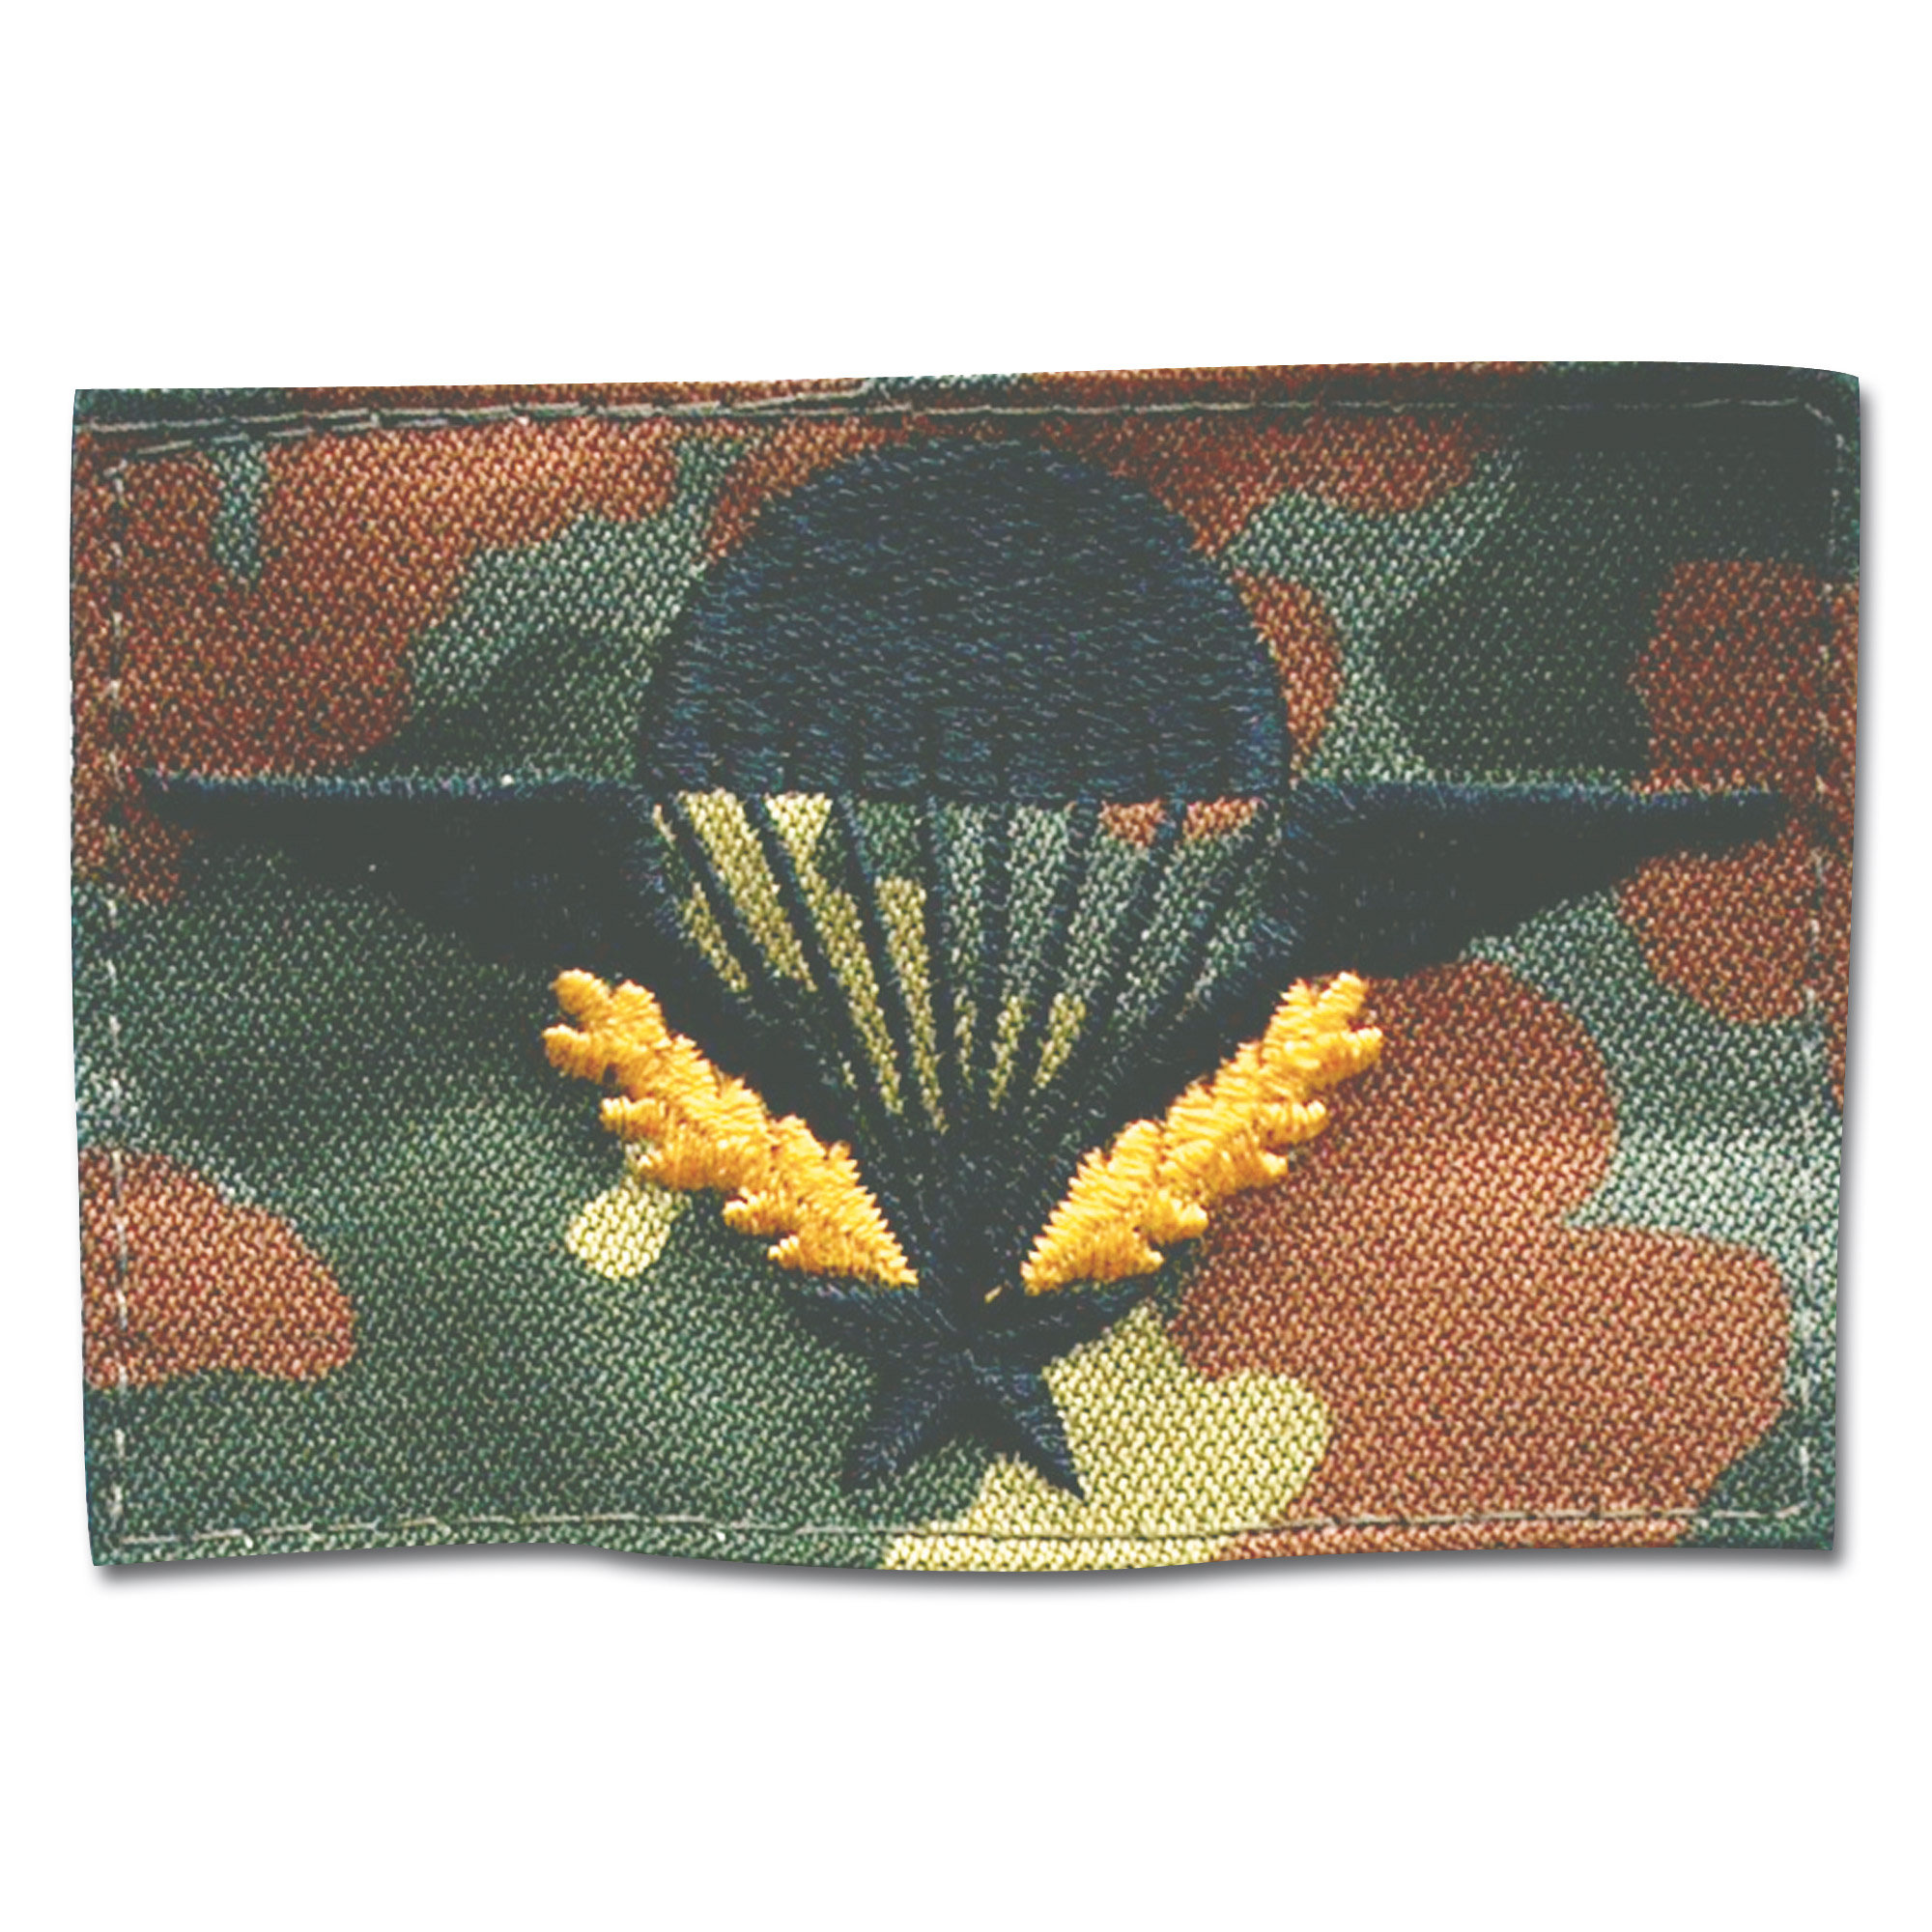 Patch French Airborne gold